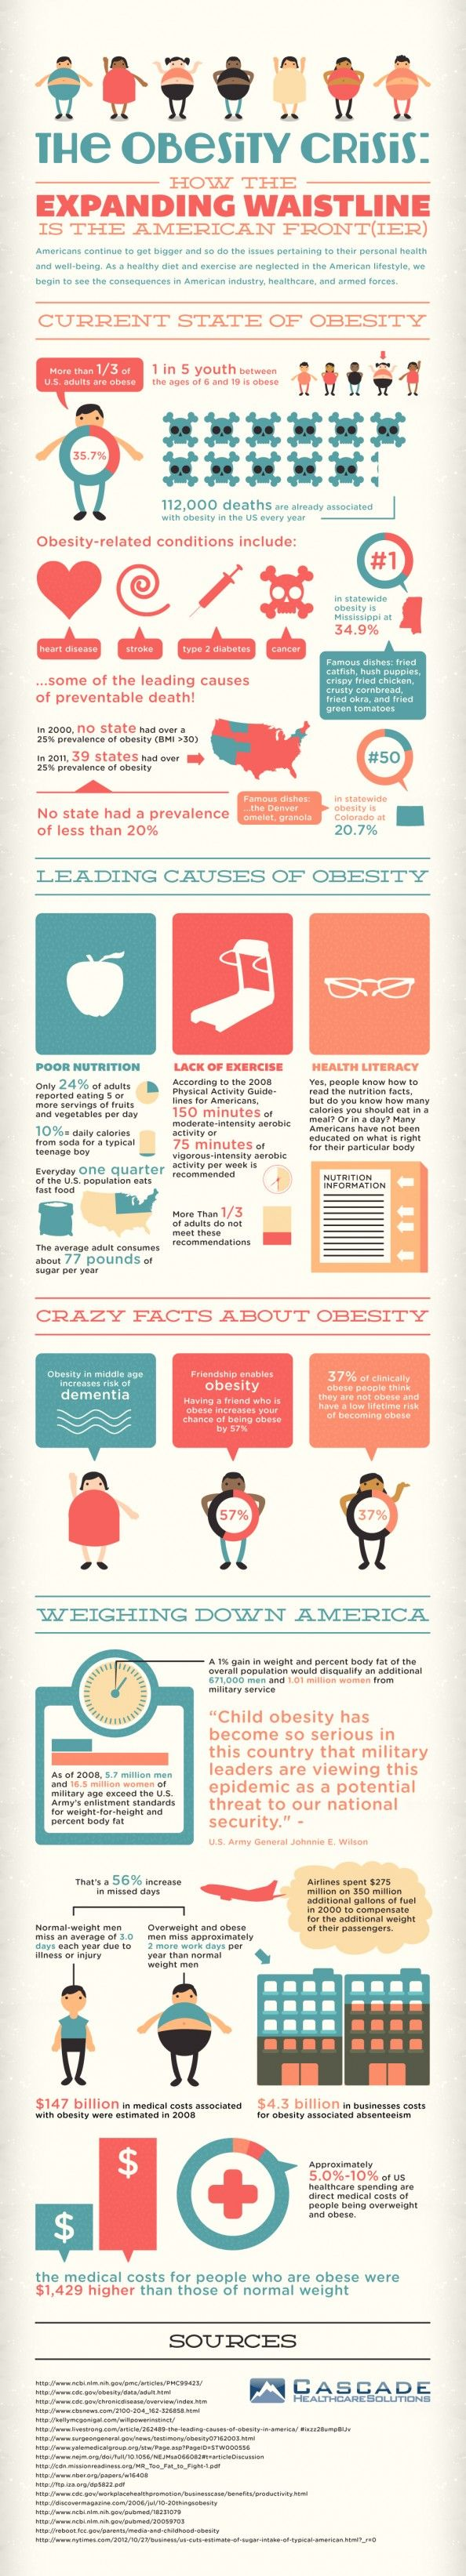 The obesity crisis. How the expanding waistline is the american frontier. #nutrition #obesity #infographics